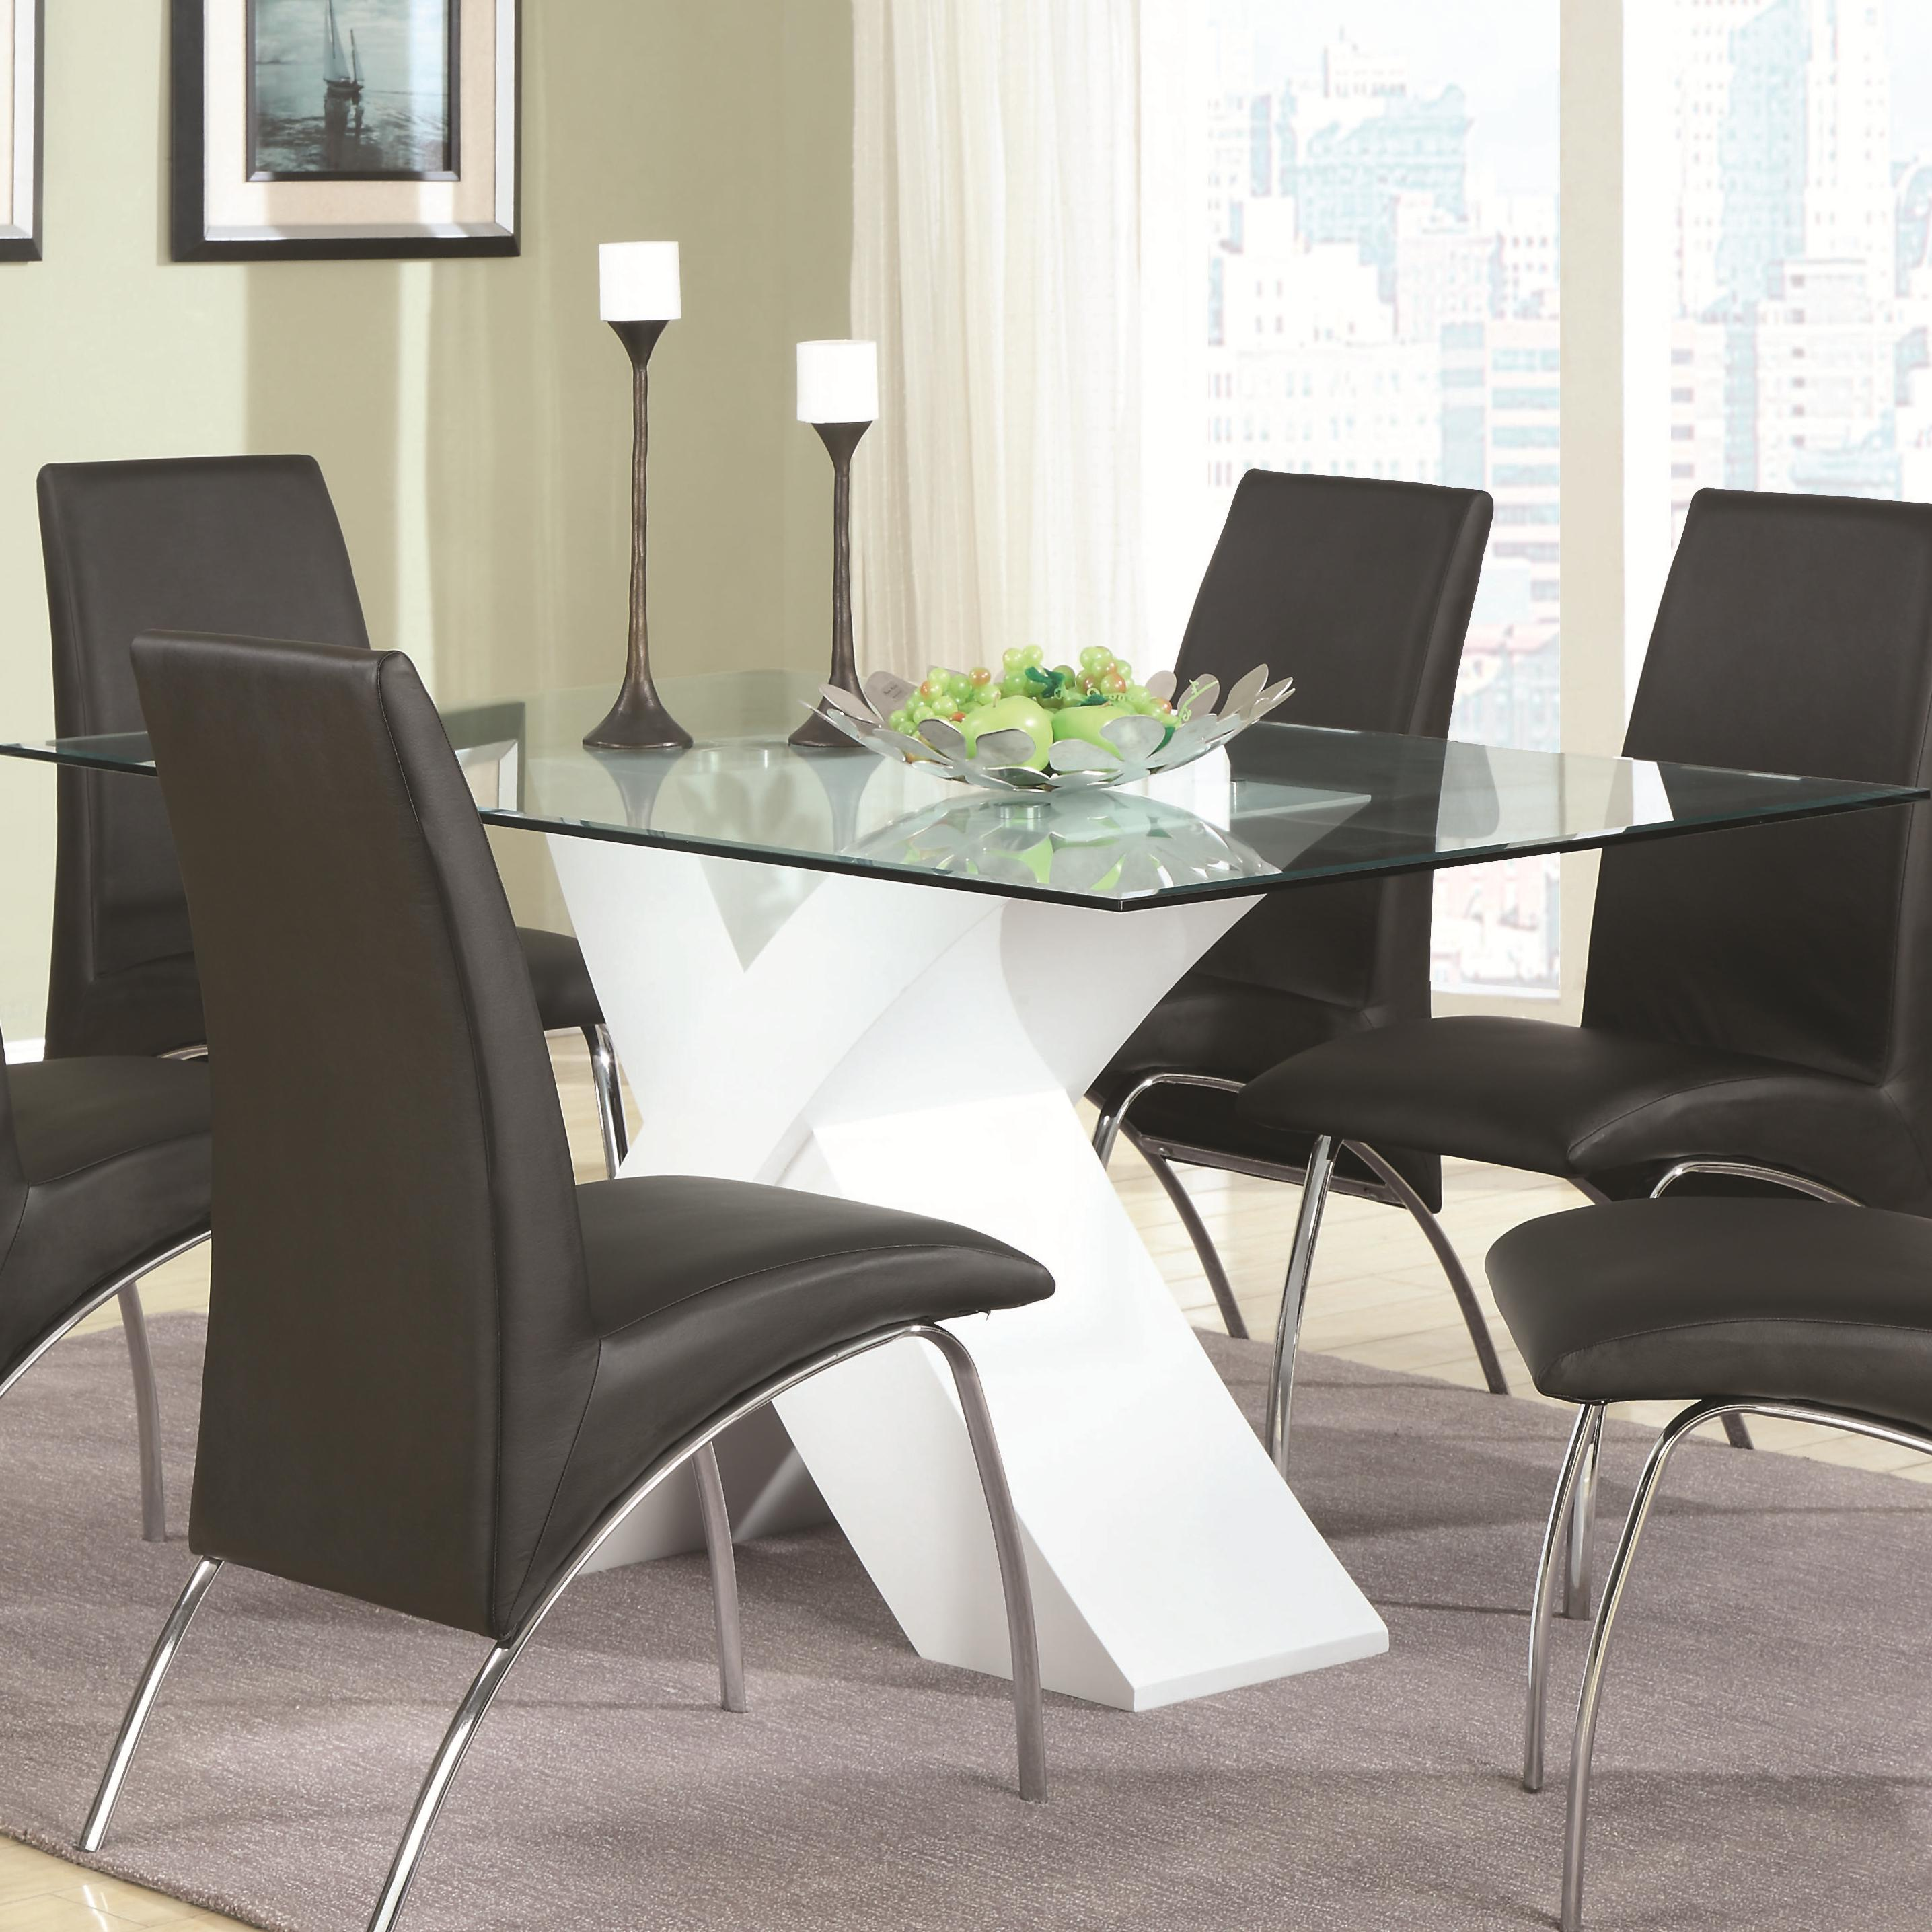 Contemporary Glass Top Dining Table with White X Pedestal  : products2Fcoaster2Fcolor2Fophelia20 20 181734809120821 b0 from www.wolffurniture.com size 2872 x 2872 jpeg 578kB